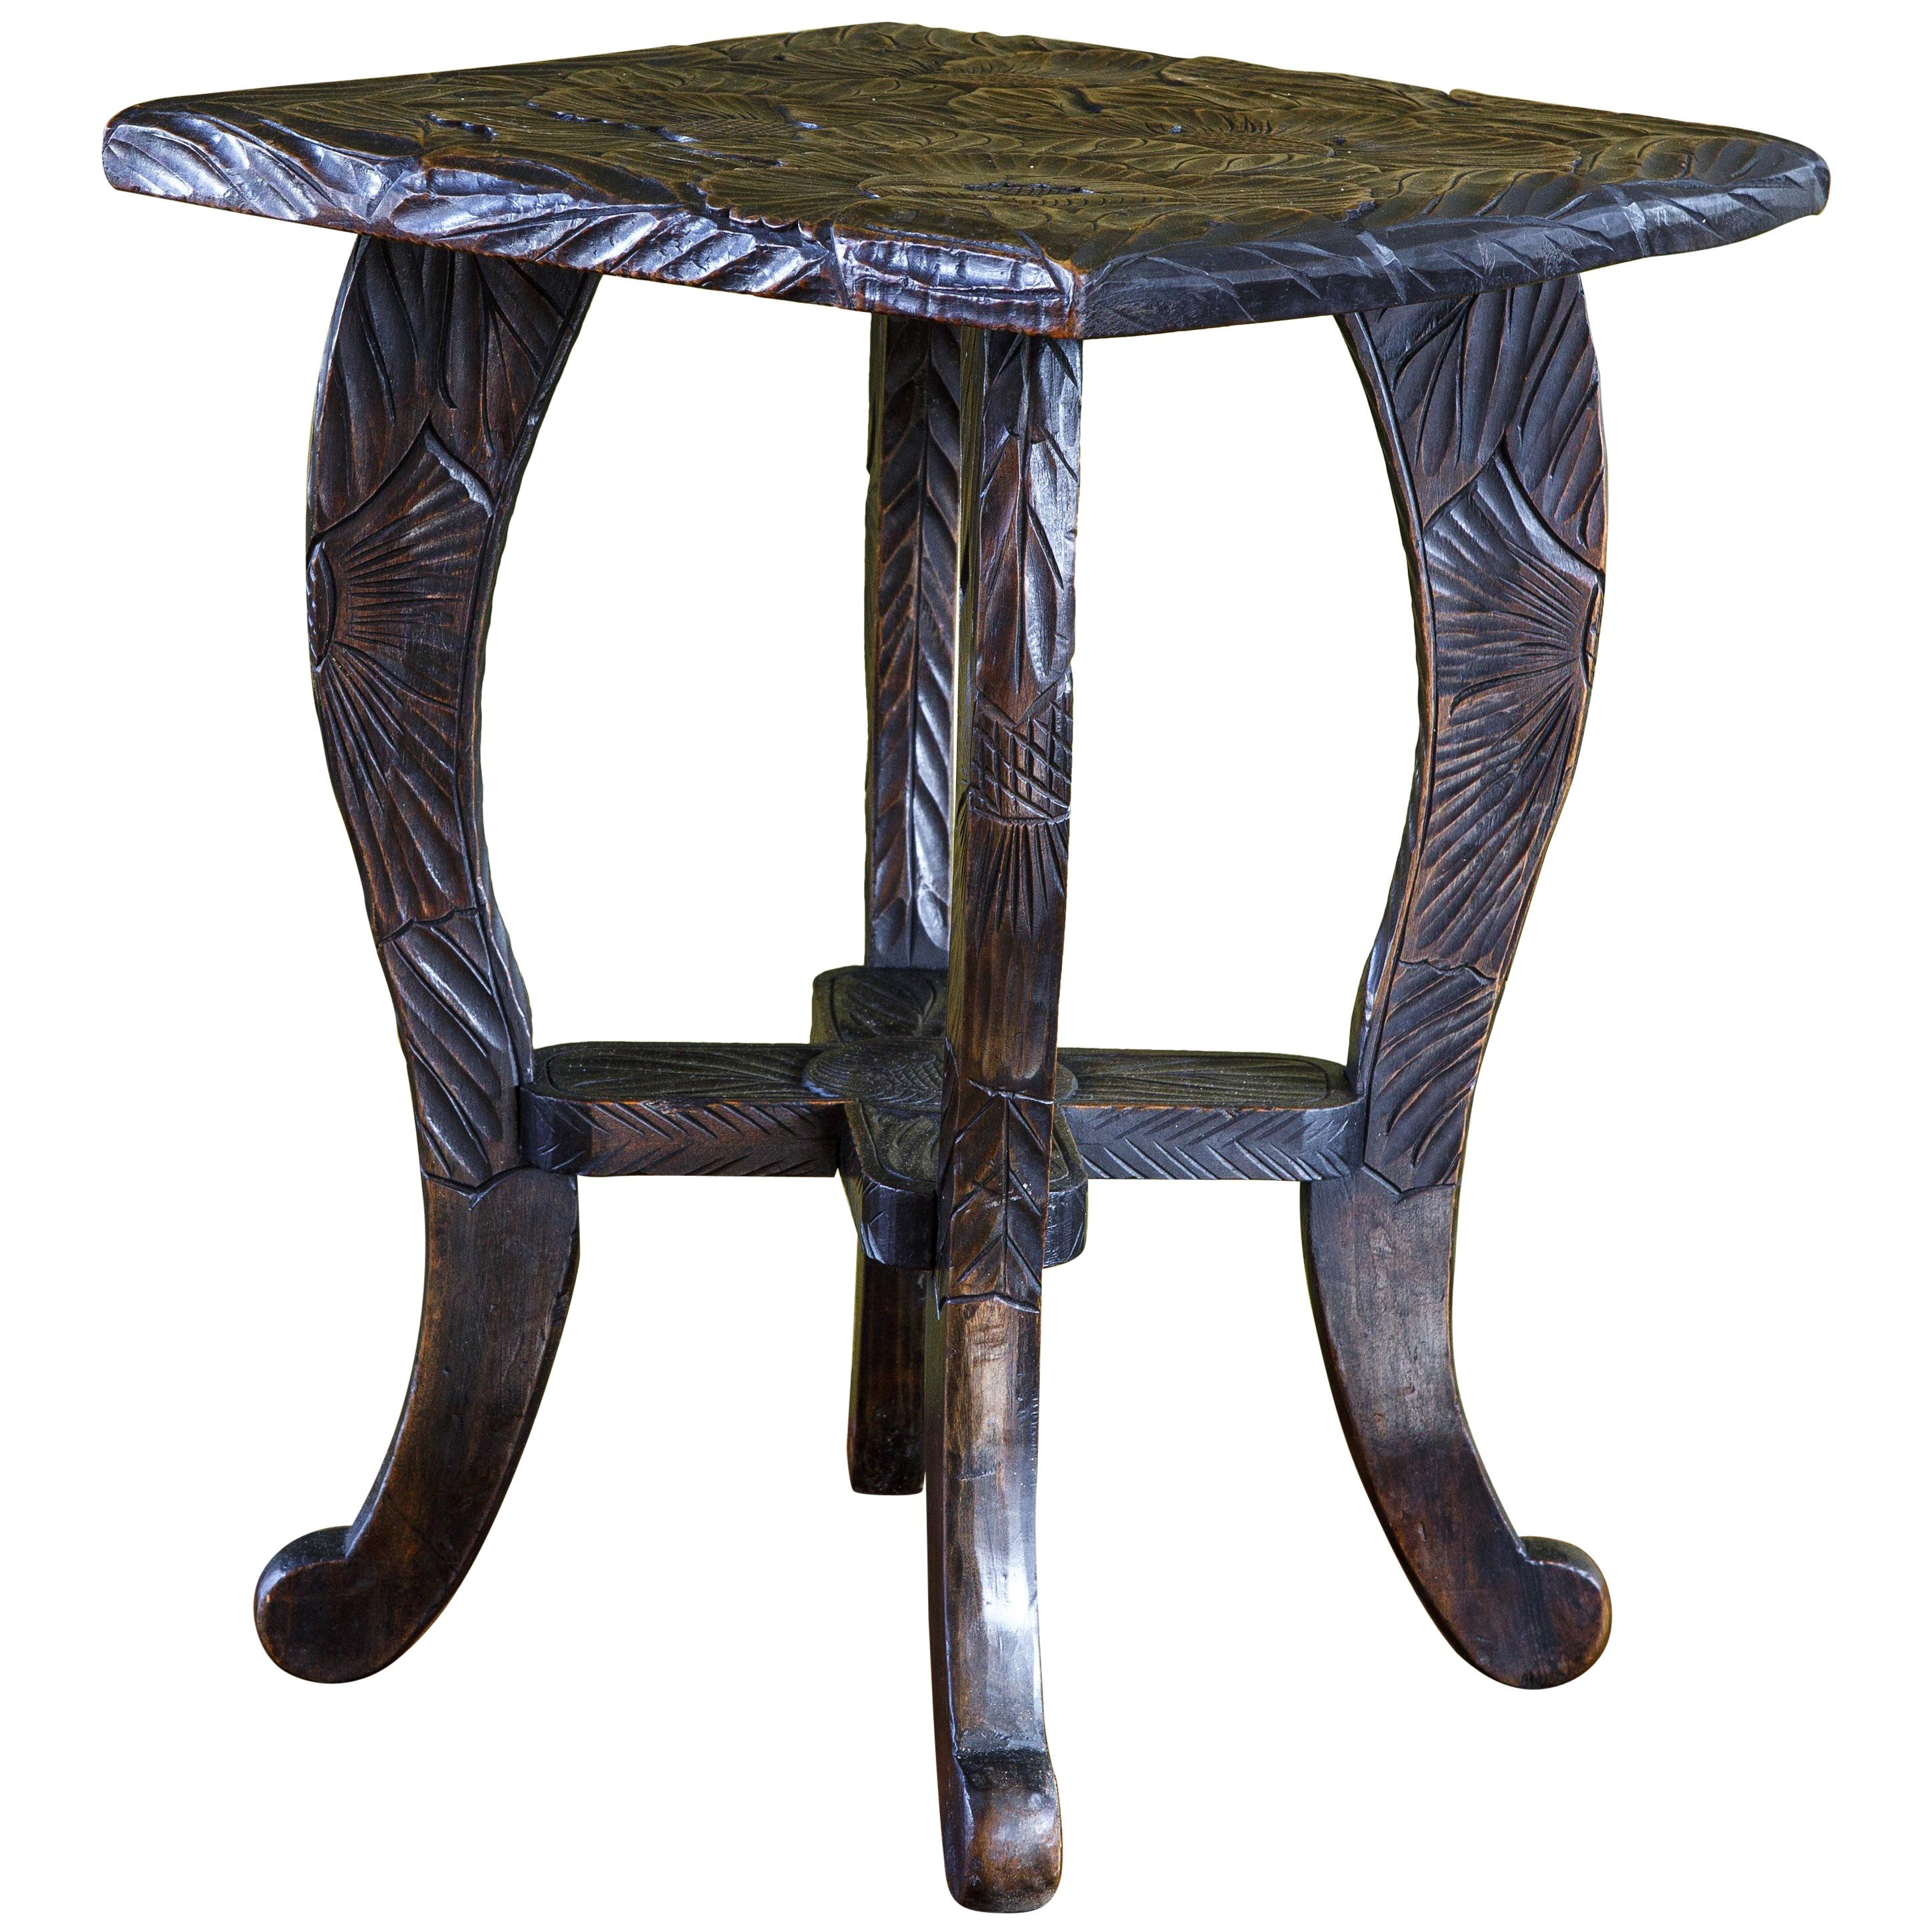 Hand Carved Aesthetic Movement Table/ Stool with Floral Design